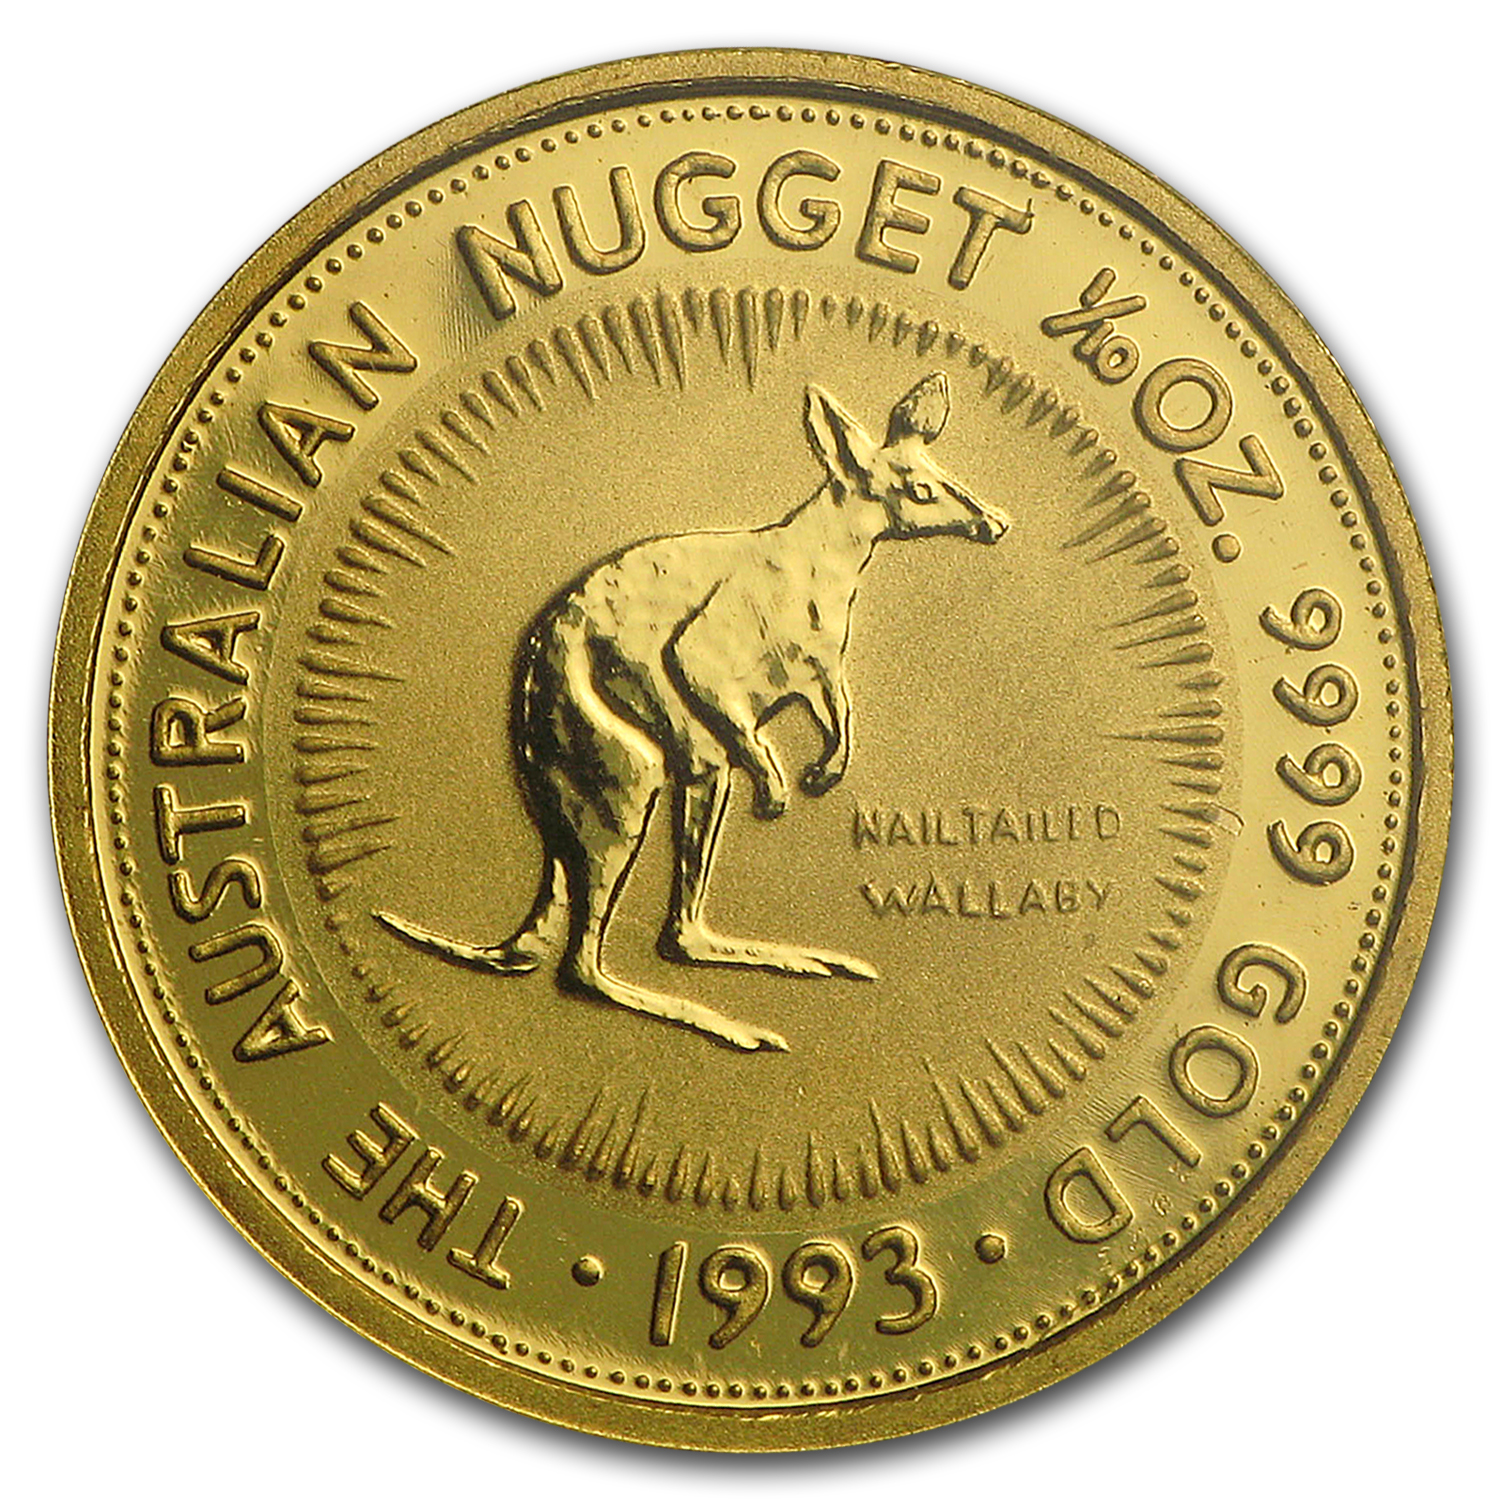 1993 Australia 1/10 oz Gold Nugget